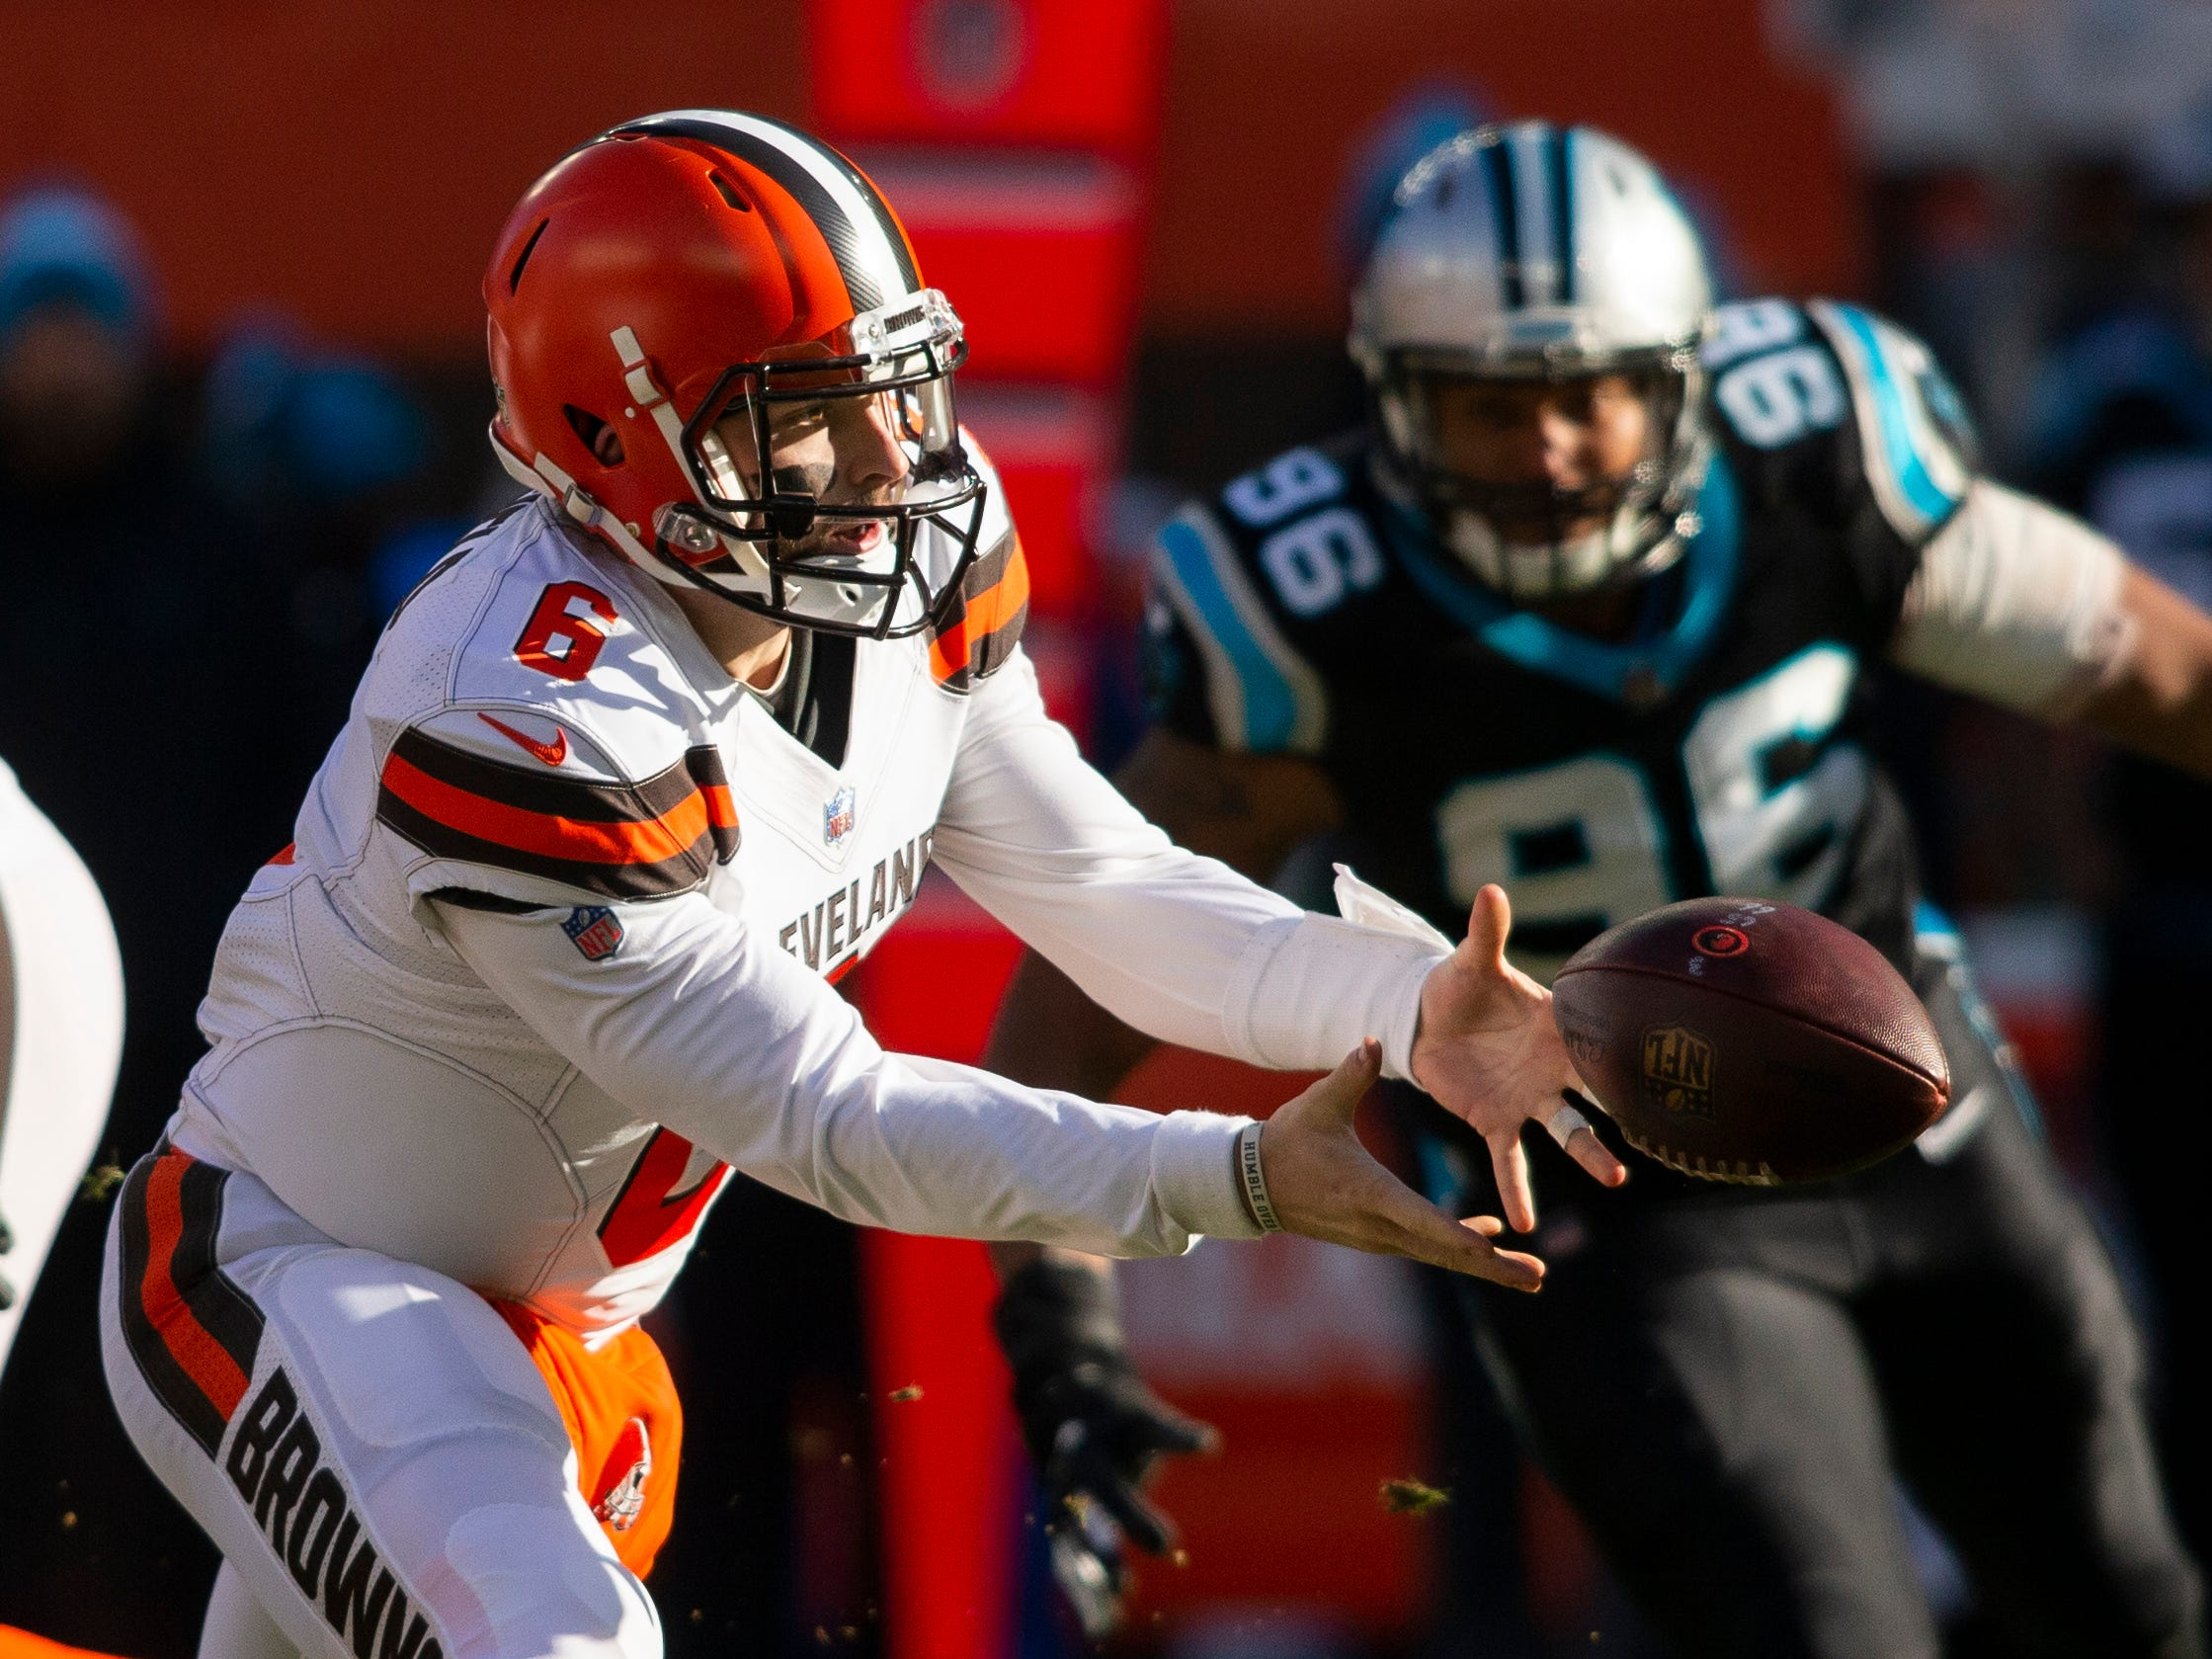 Browns quarterback Baker Mayfield tosses the ball against the Panthers.